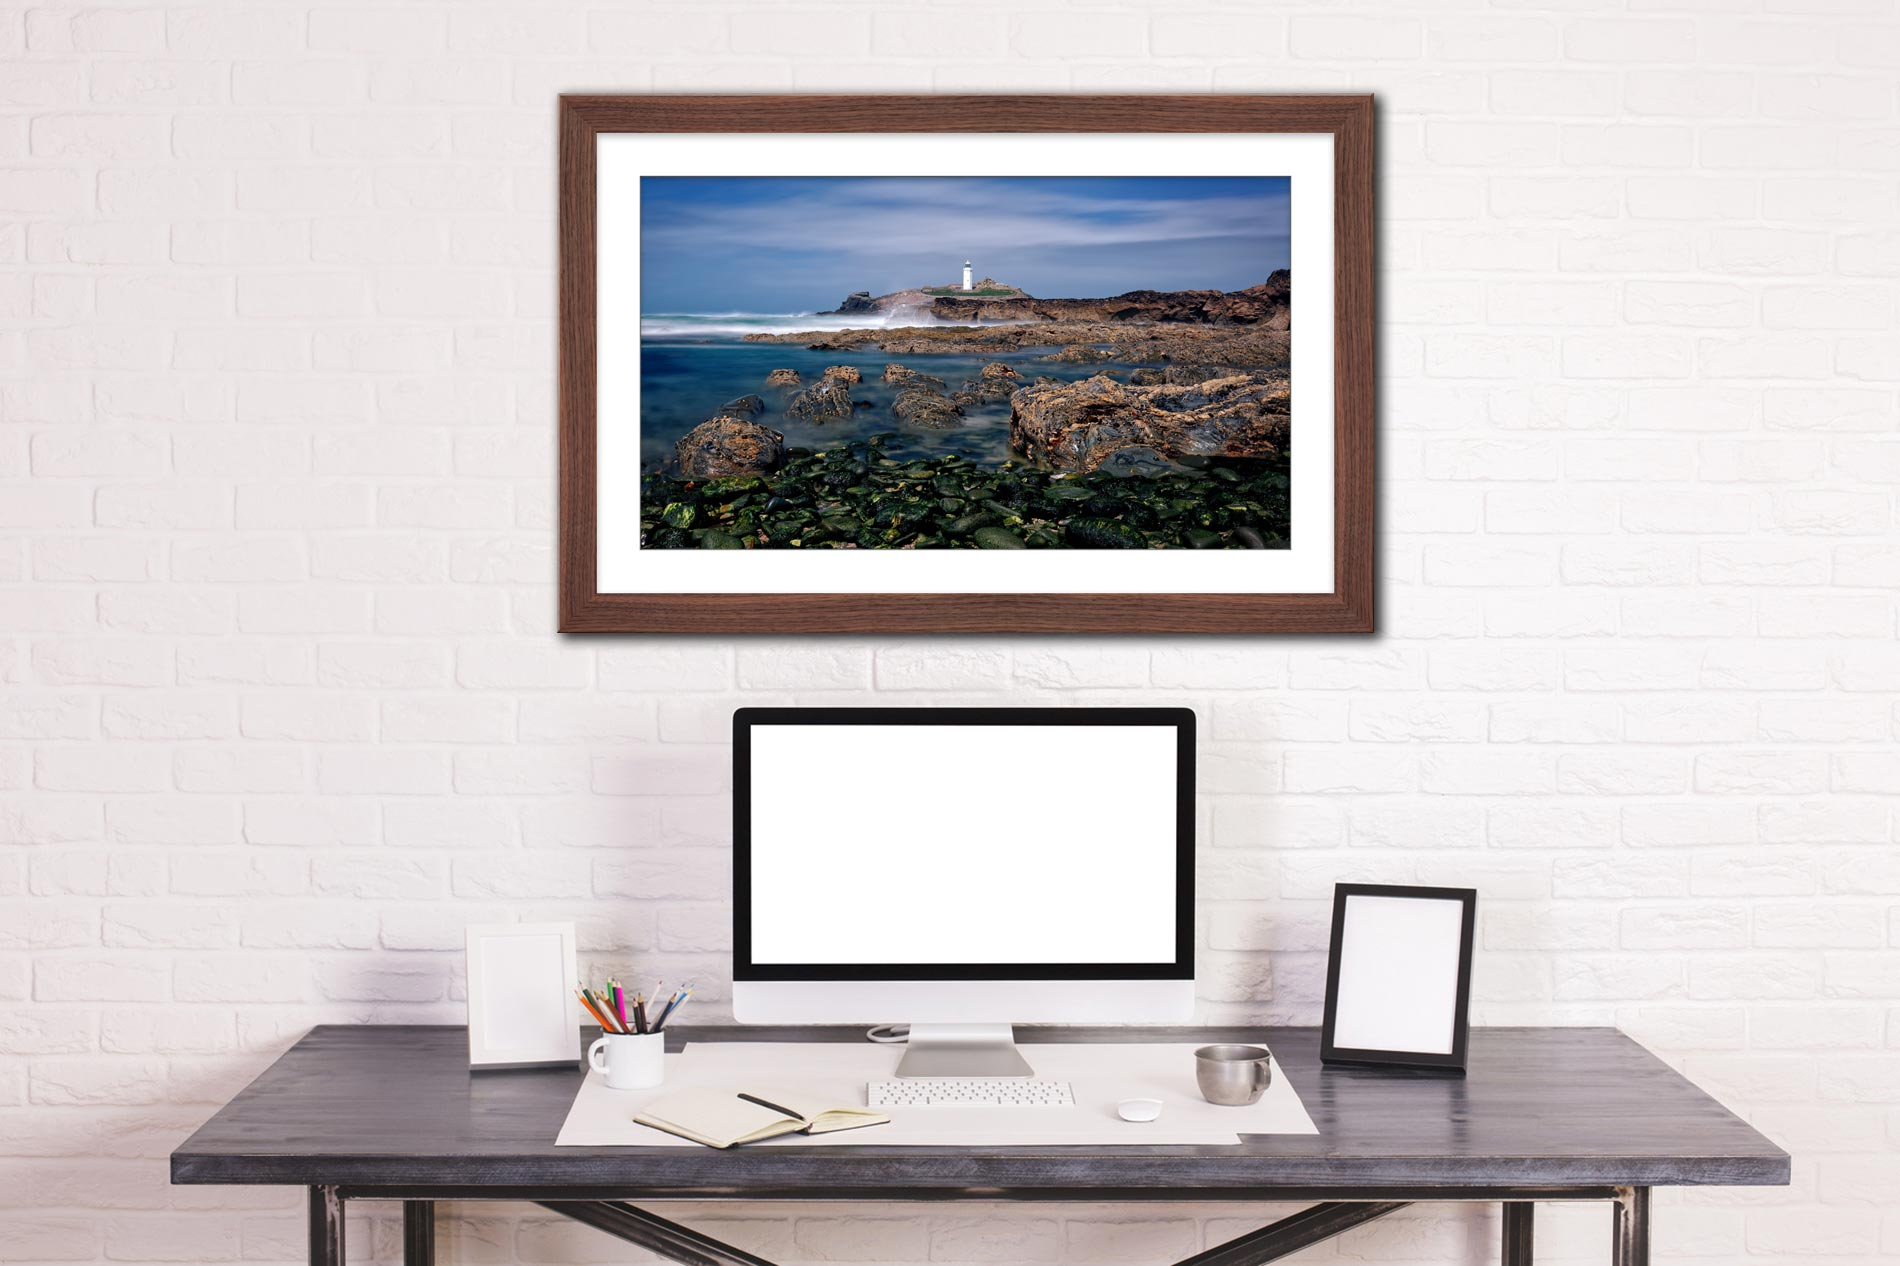 Godrevy Point Lighthouse and Rocks - Framed Print with Mount on Wall